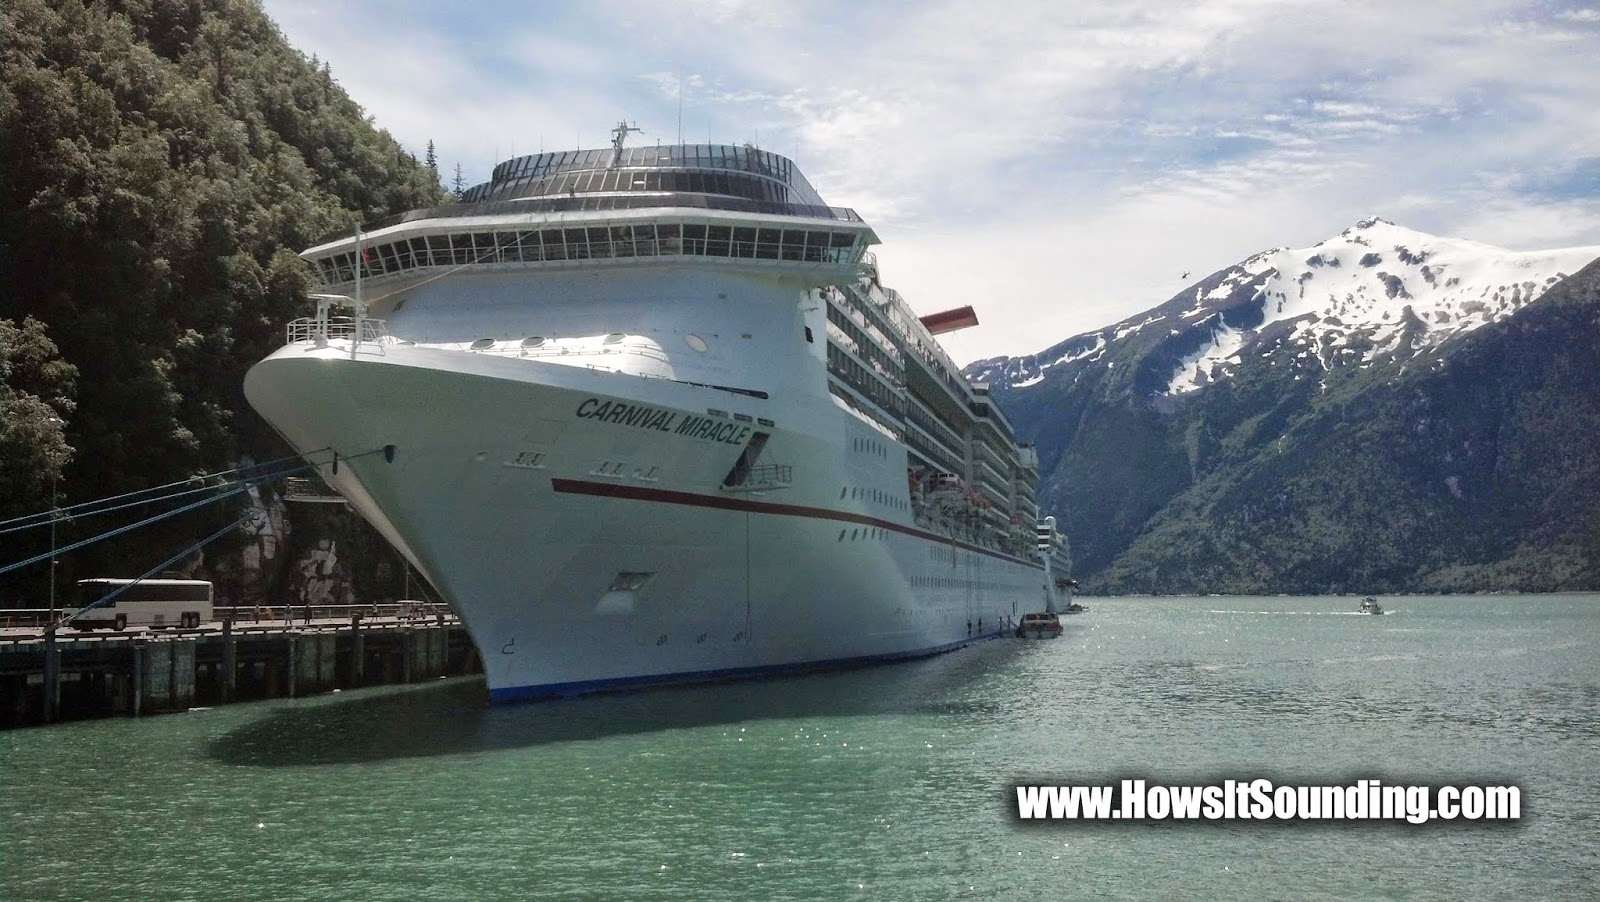 Carnival cruise lines miracle ship sailing sound tech Skagway Juneau Alaska victoria british Colombia Canada dylan benson tracy arms fjord